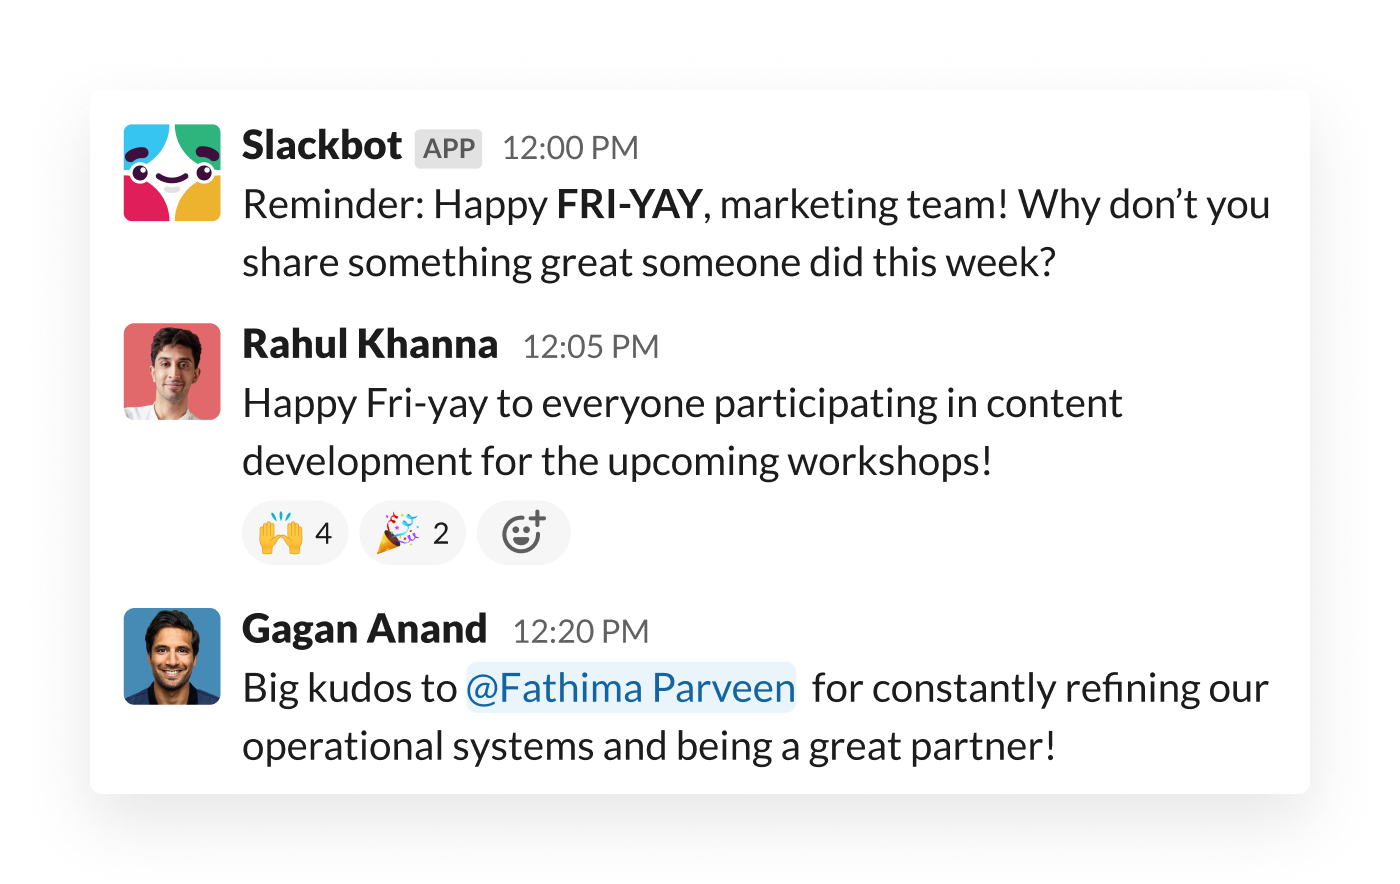 An automated message from Slack prompts teammates to recognise one another's work